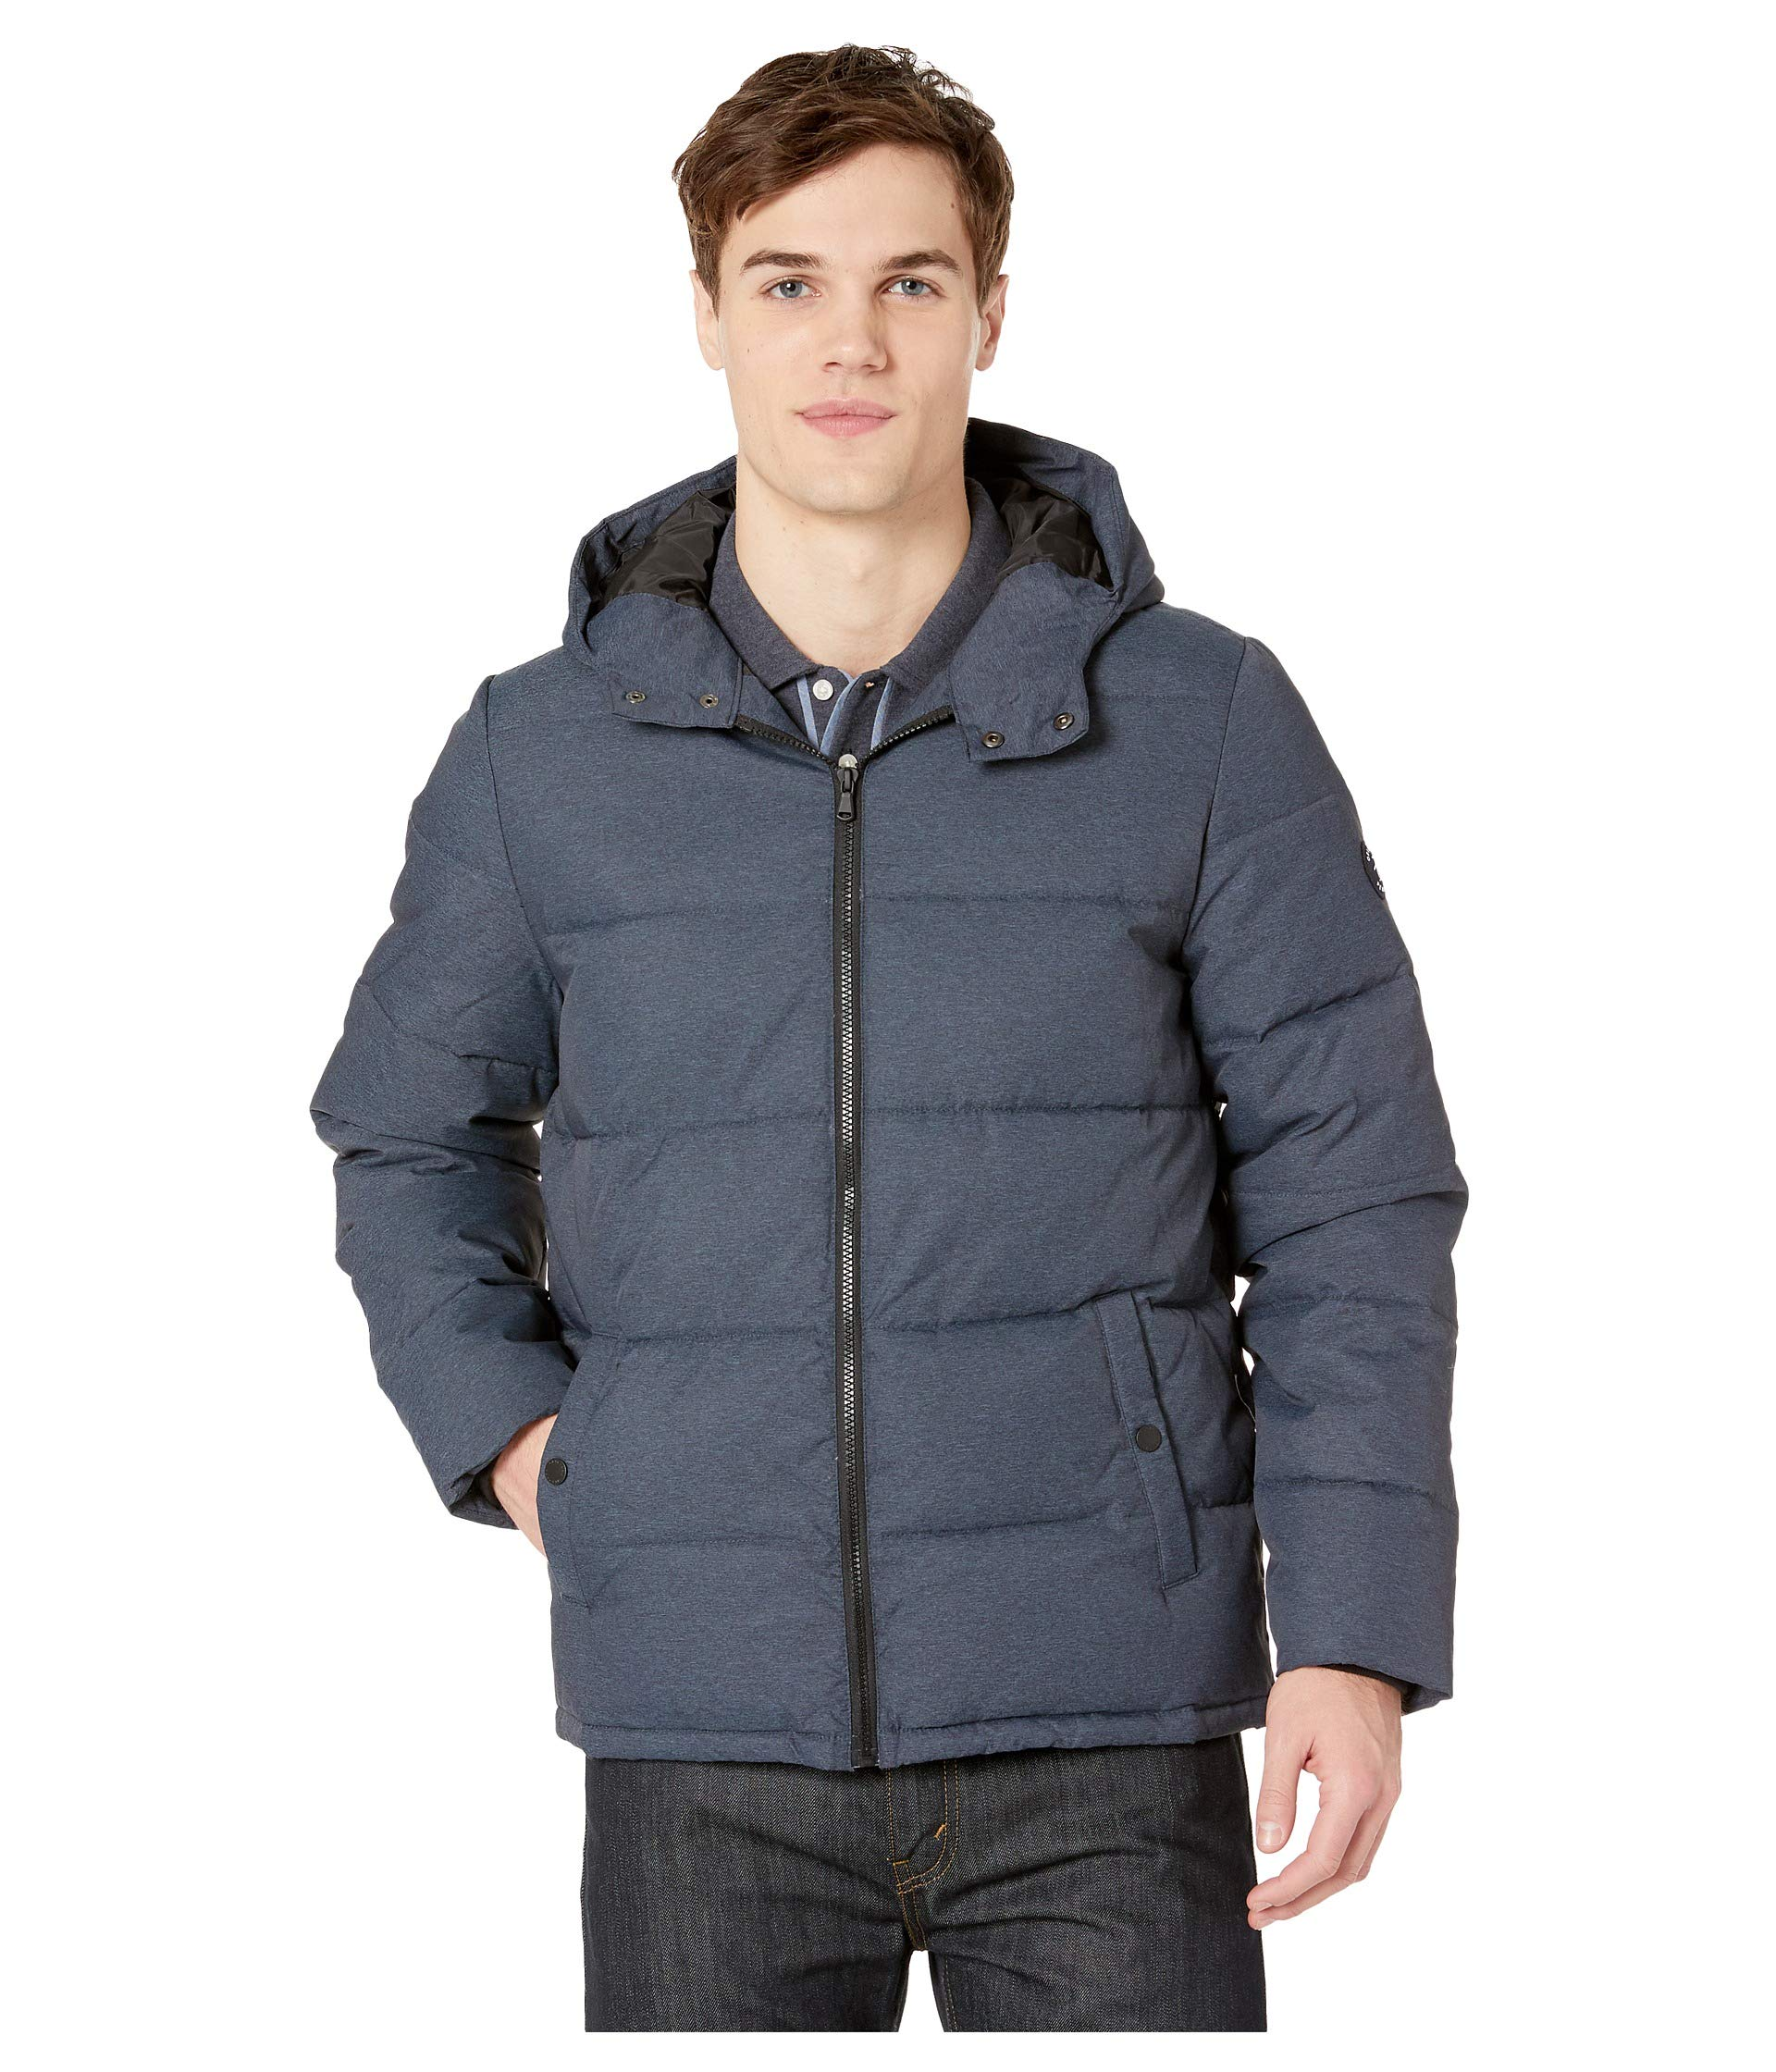 Puffer Melange Original Insulated Jacket Dark Sapphire Penguin fqxwAHgx4Z